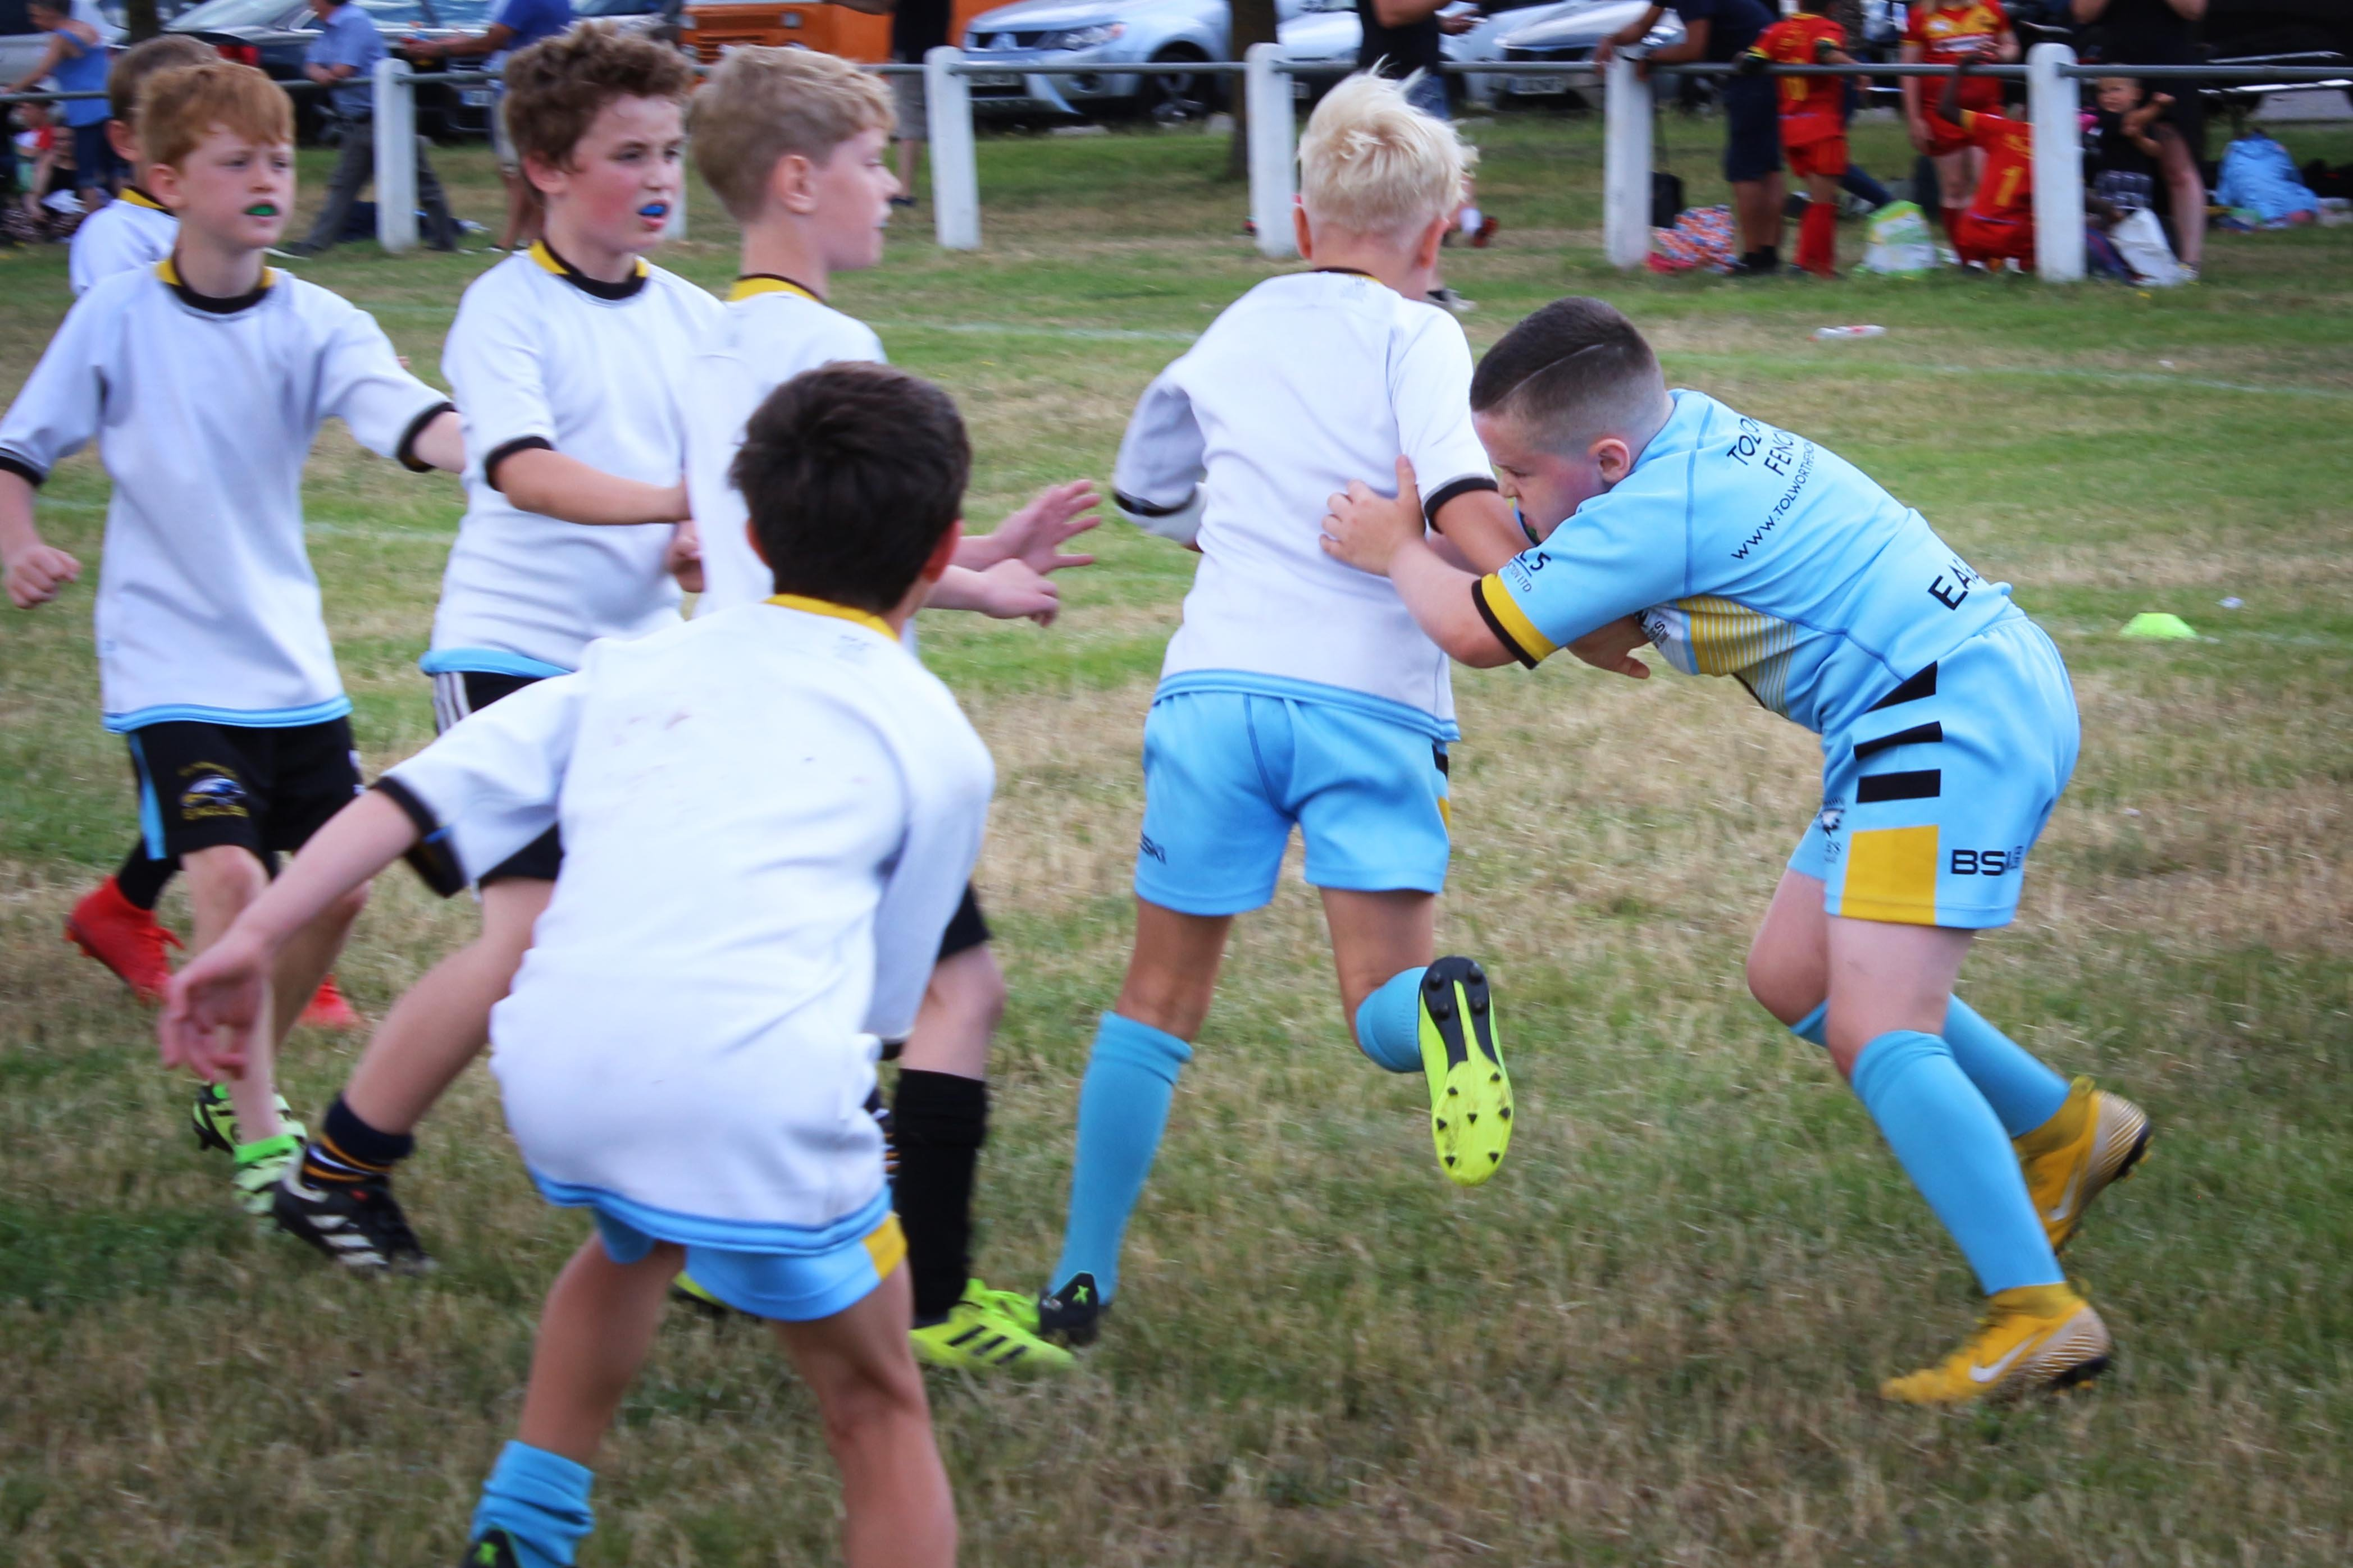 U9s Elmbridge vs Elmbridge 15